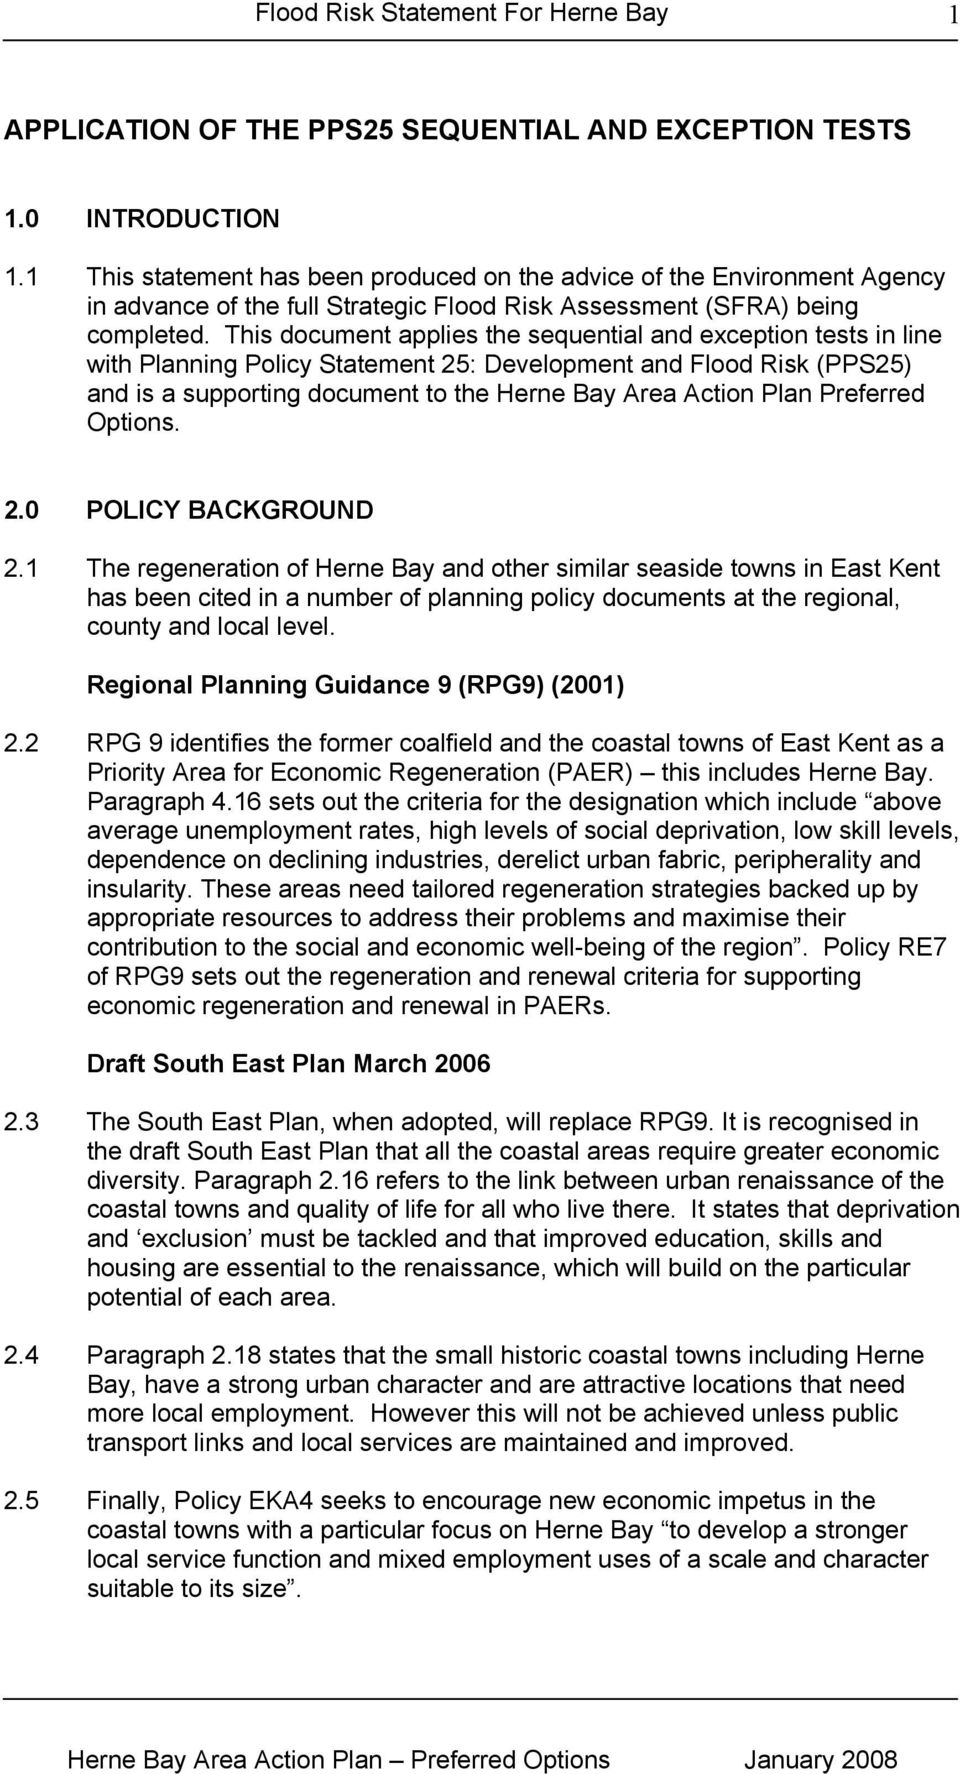 This document applies the sequential and exception tests in line with Planning Policy Statement 25: Development and Flood Risk (PPS25) and is a supporting document to the Herne Bay Area Action Plan